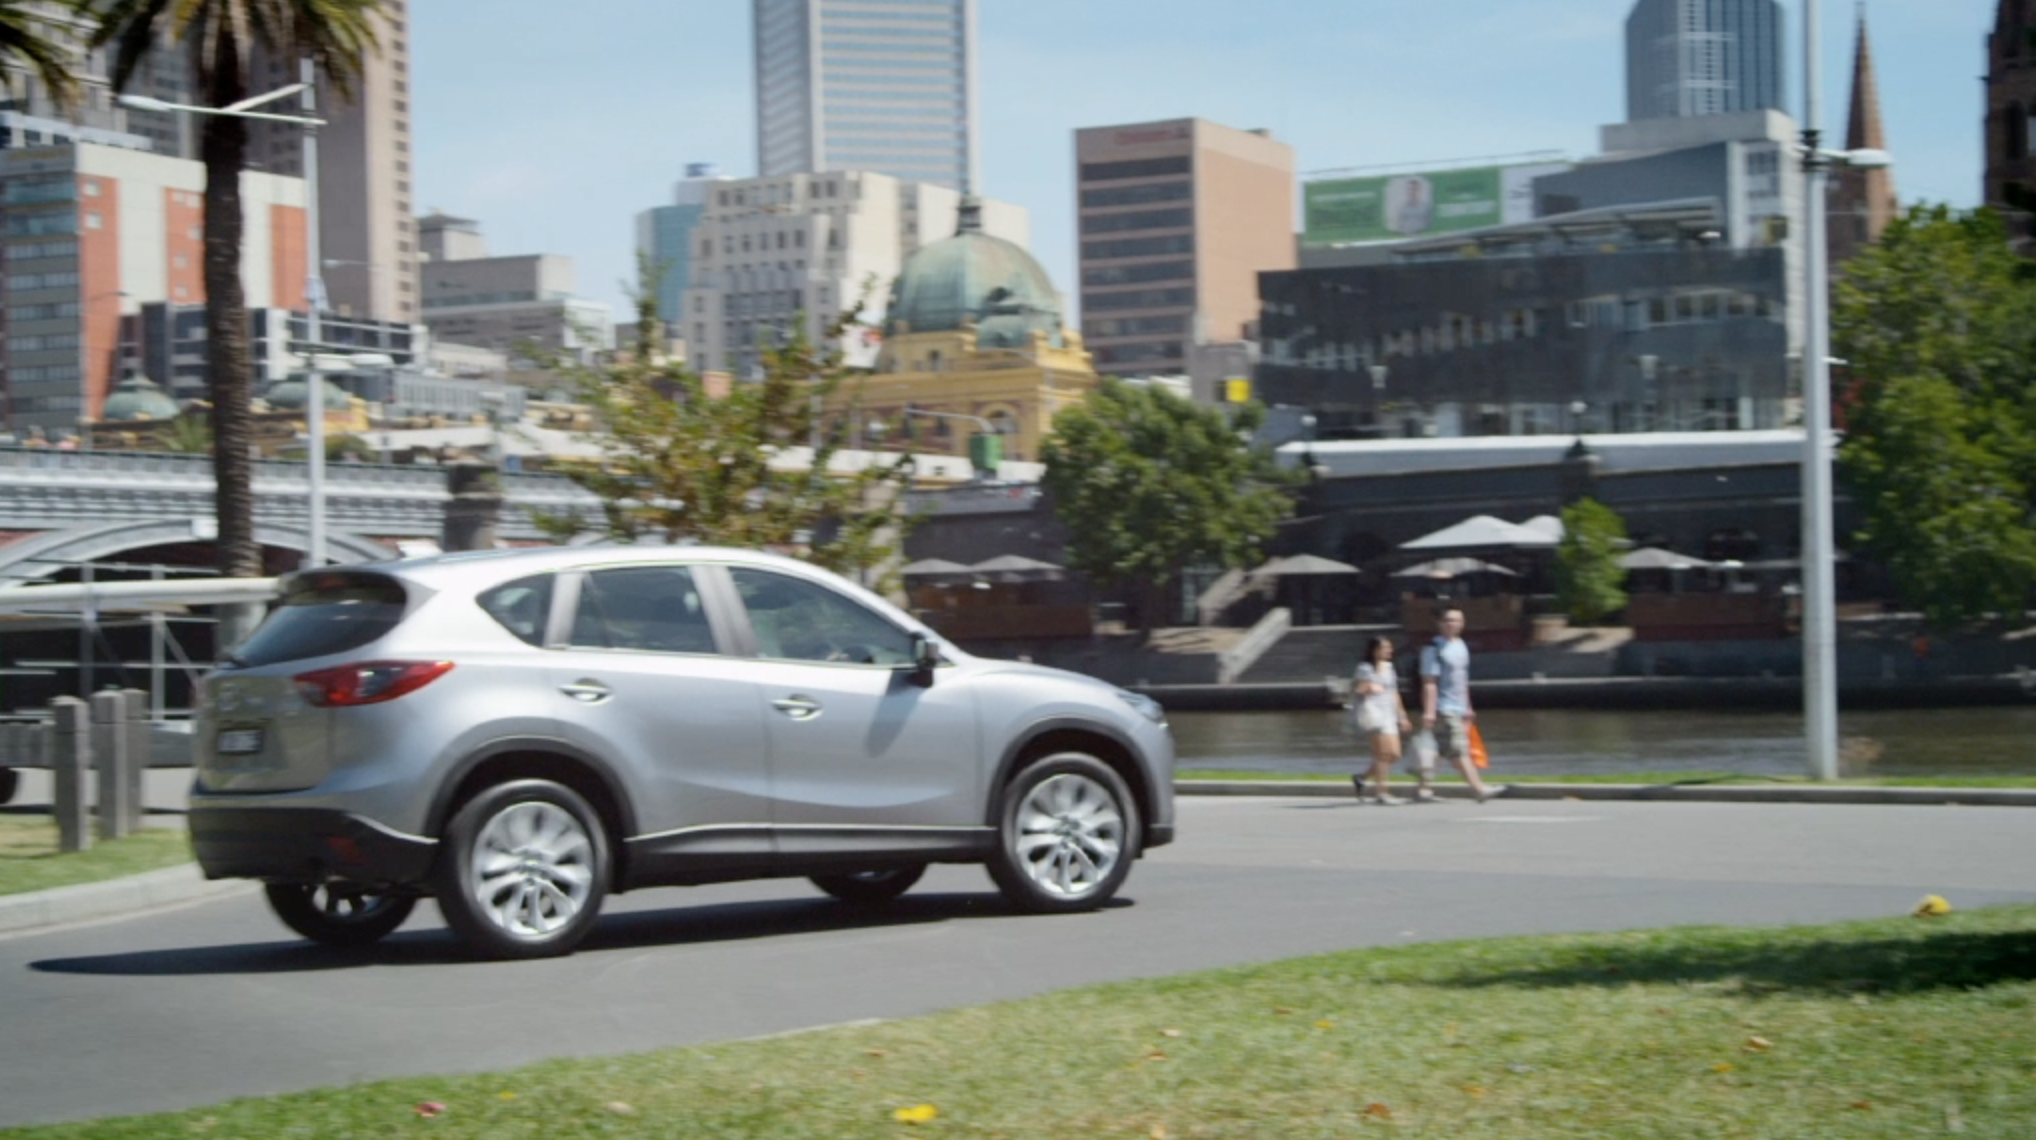 Powerful New 2.5 Litre Engine Debuts in Mazda CX-5.